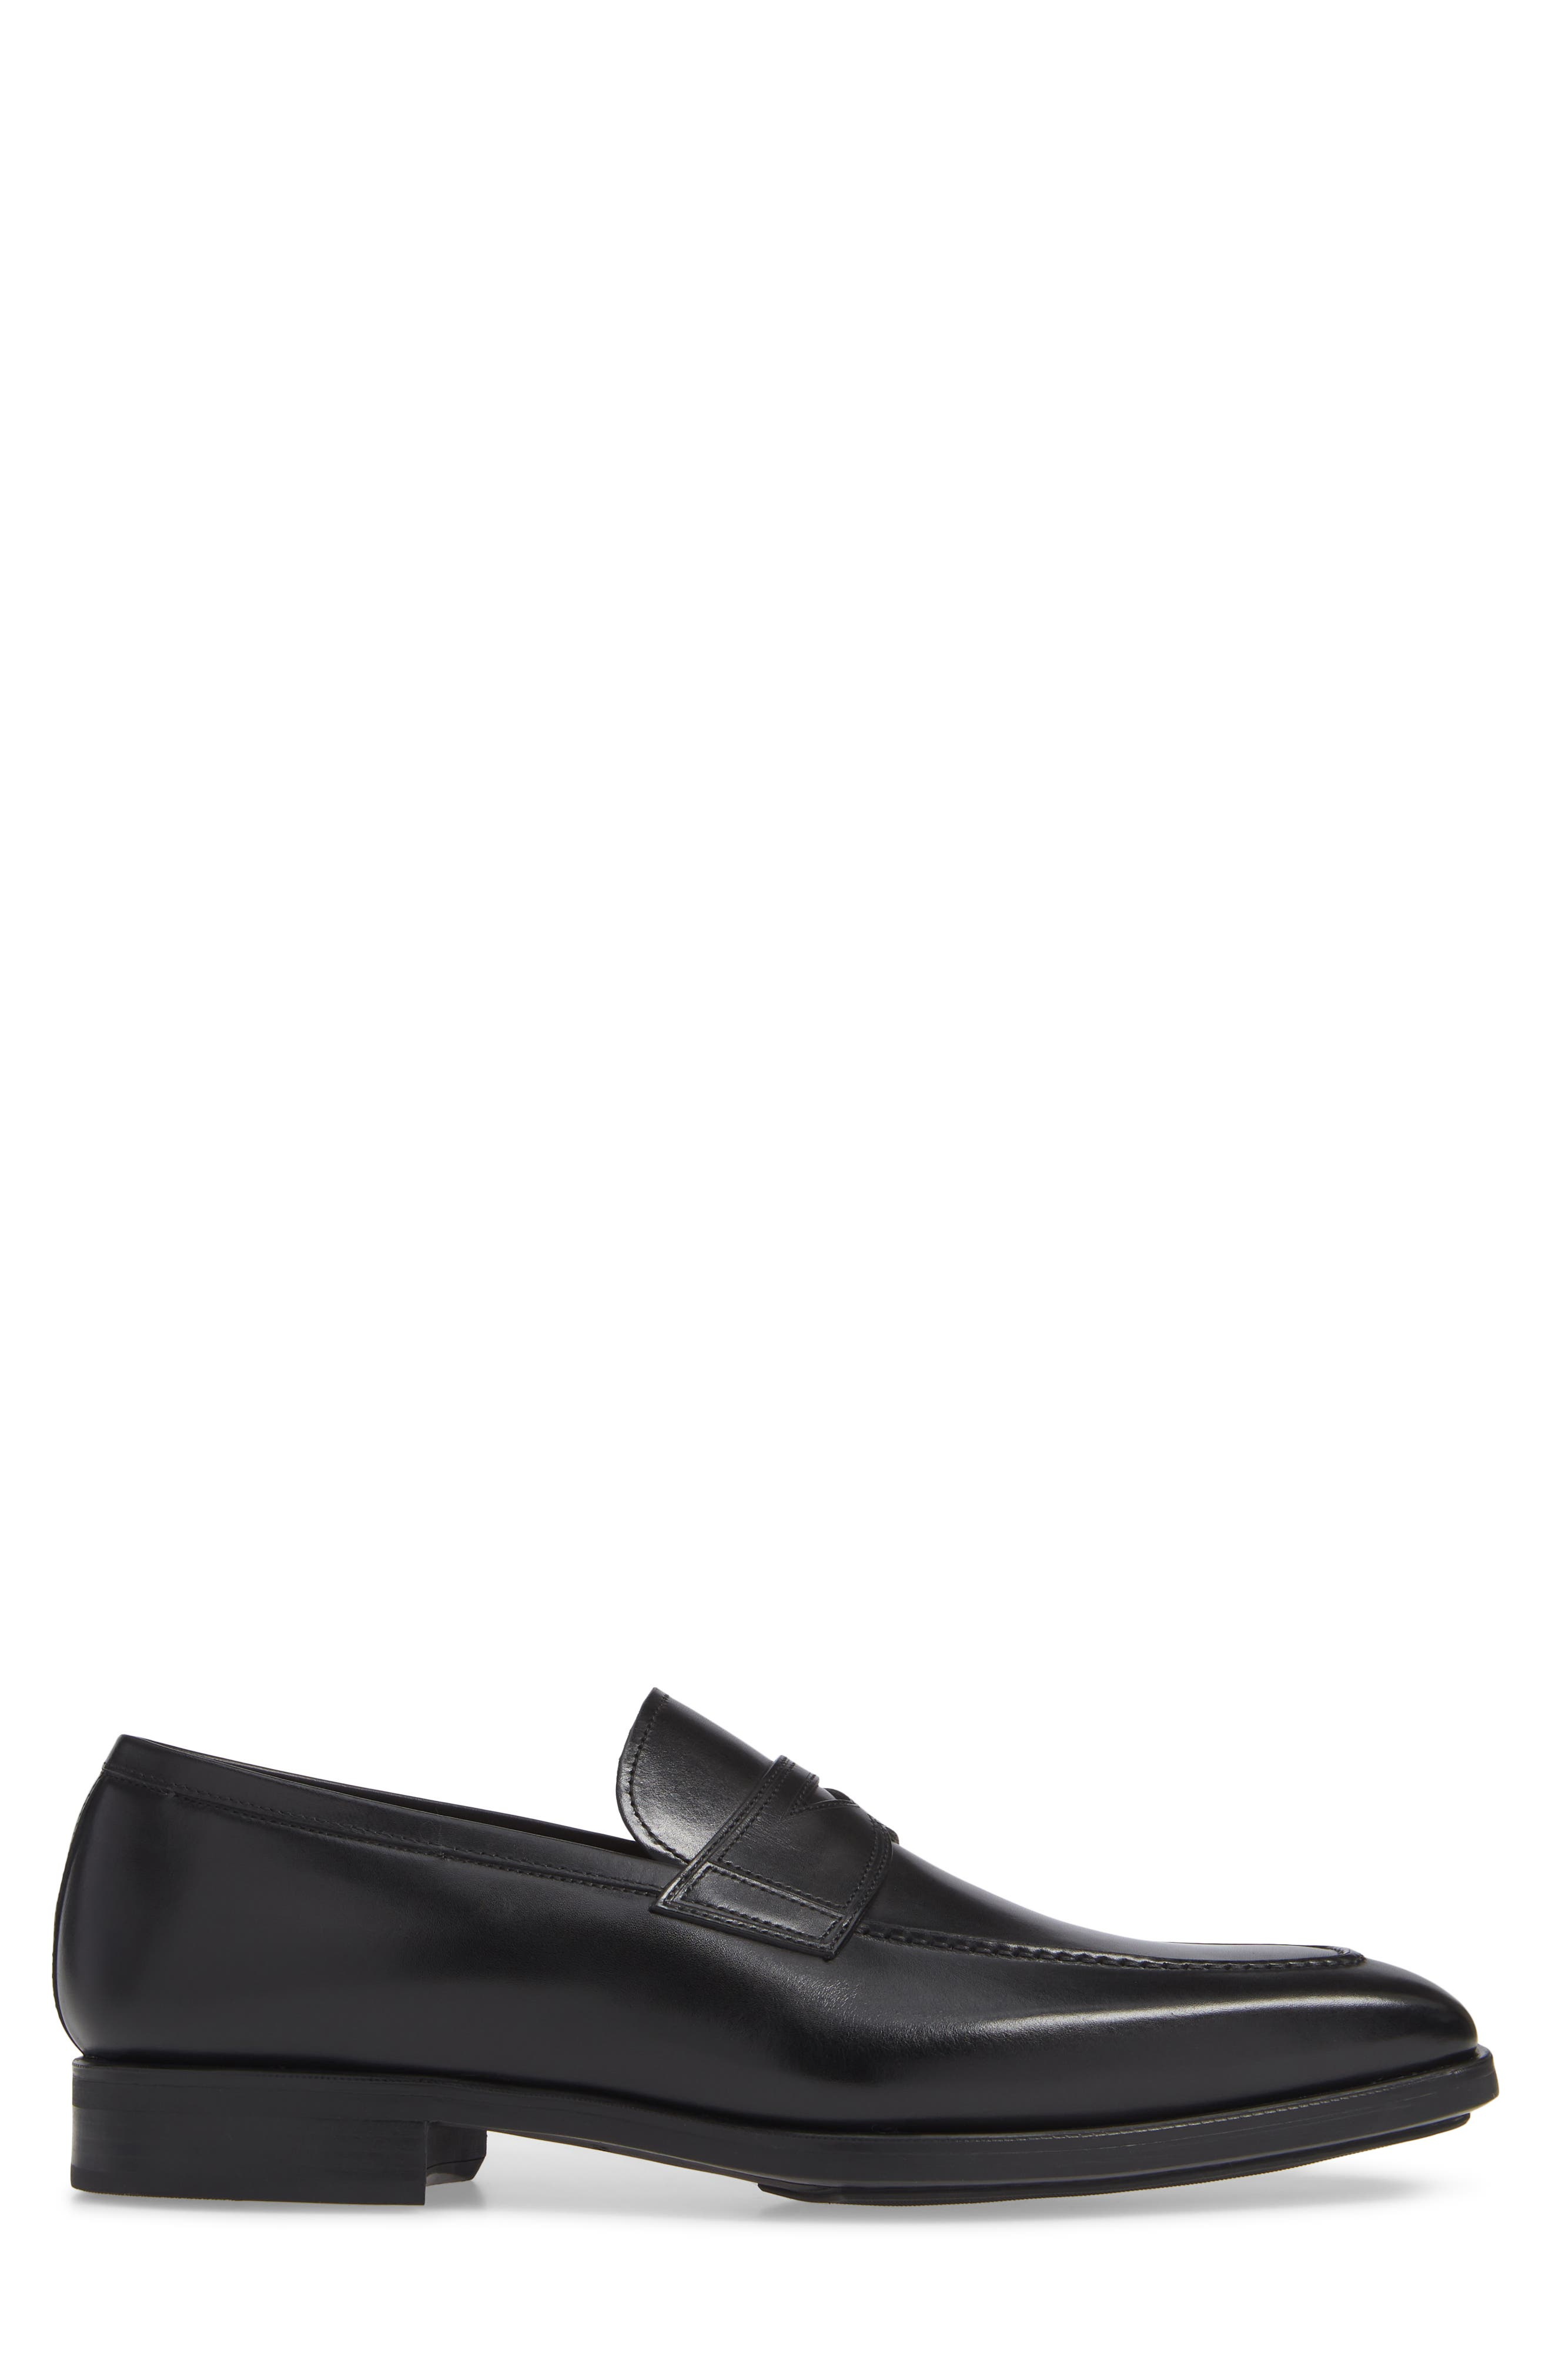 Ramon Penny Loafer,                             Alternate thumbnail 3, color,                             001